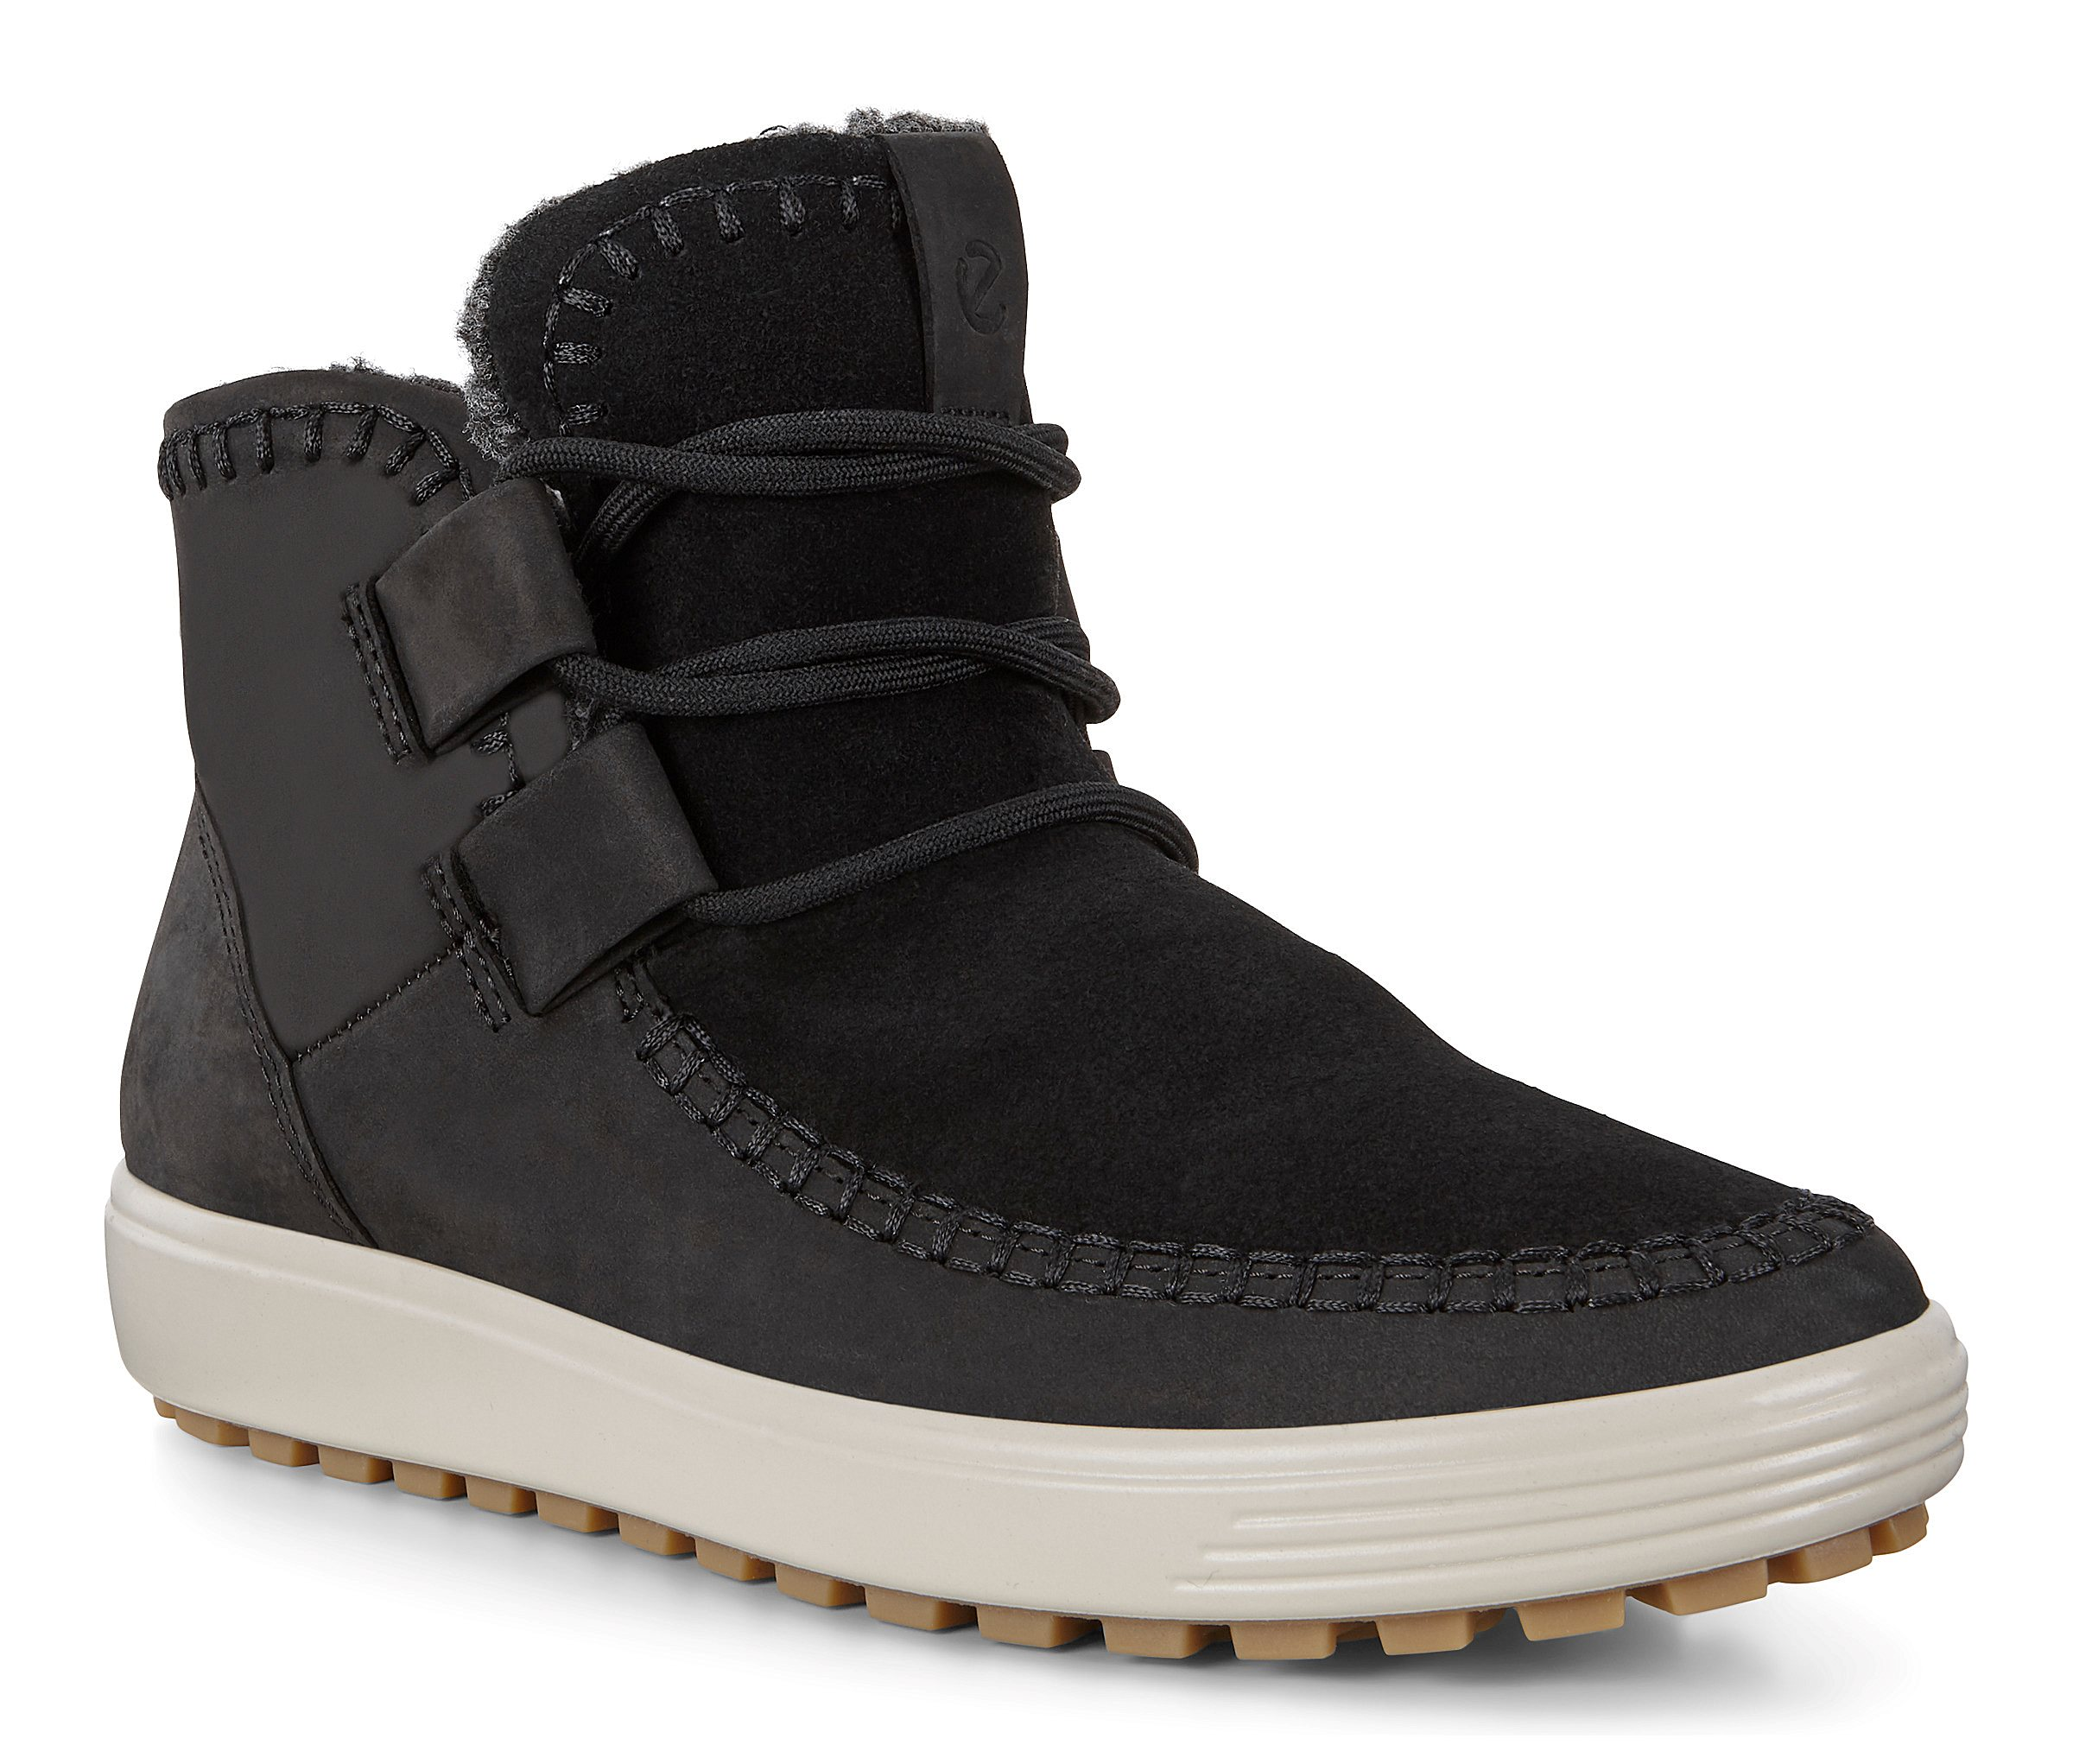 SHOES BOOTS ECCO SOFT 7 TRED W